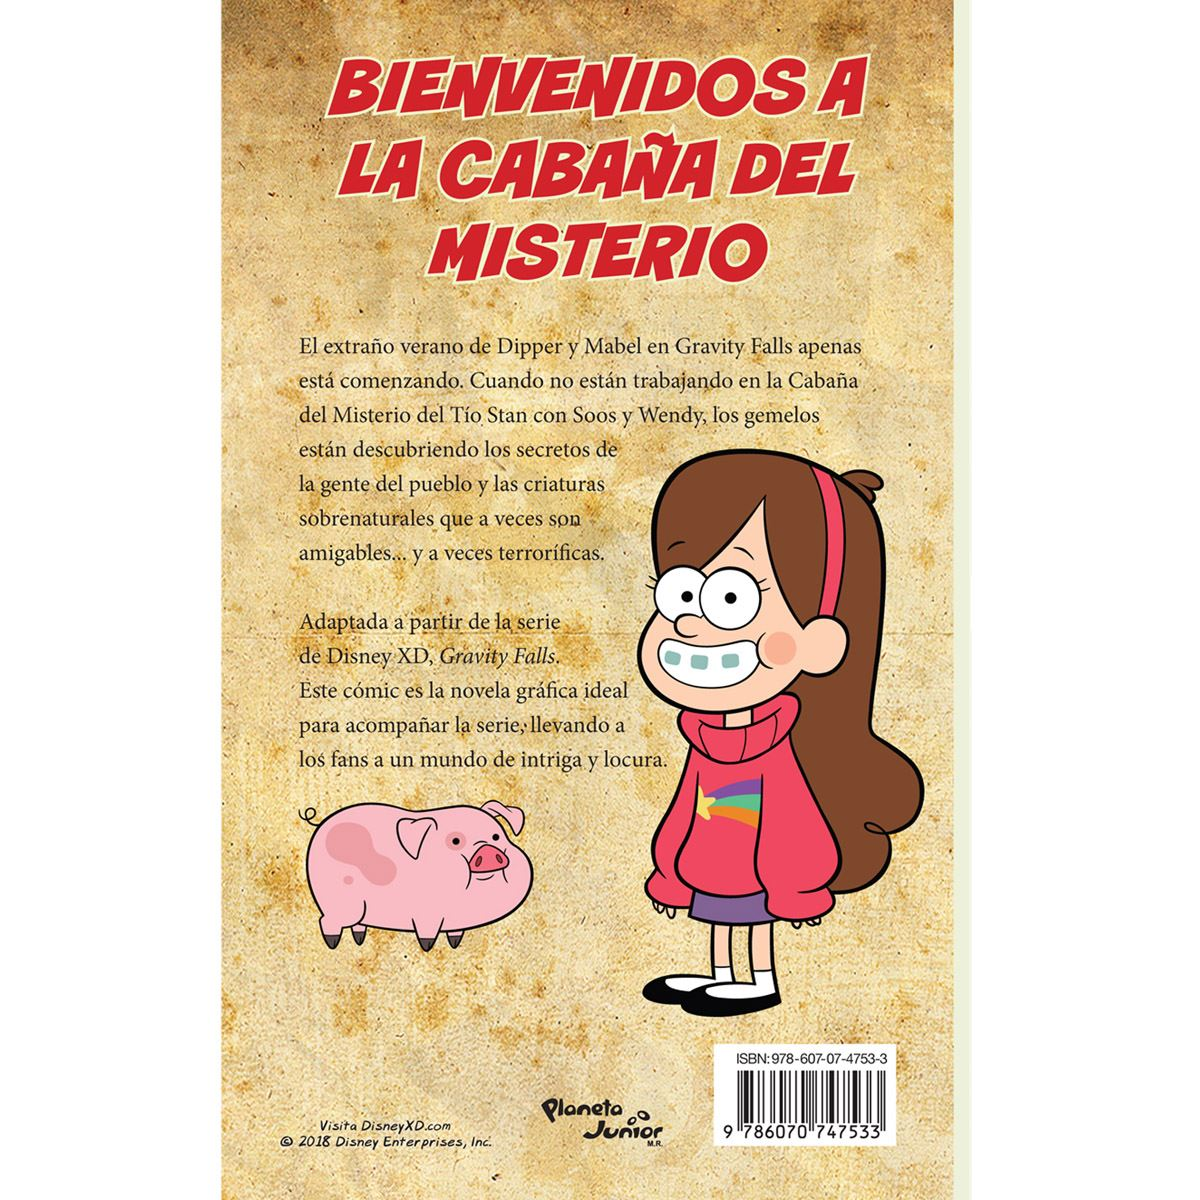 Gravity falls. cómic 2 Libro - Sanborns